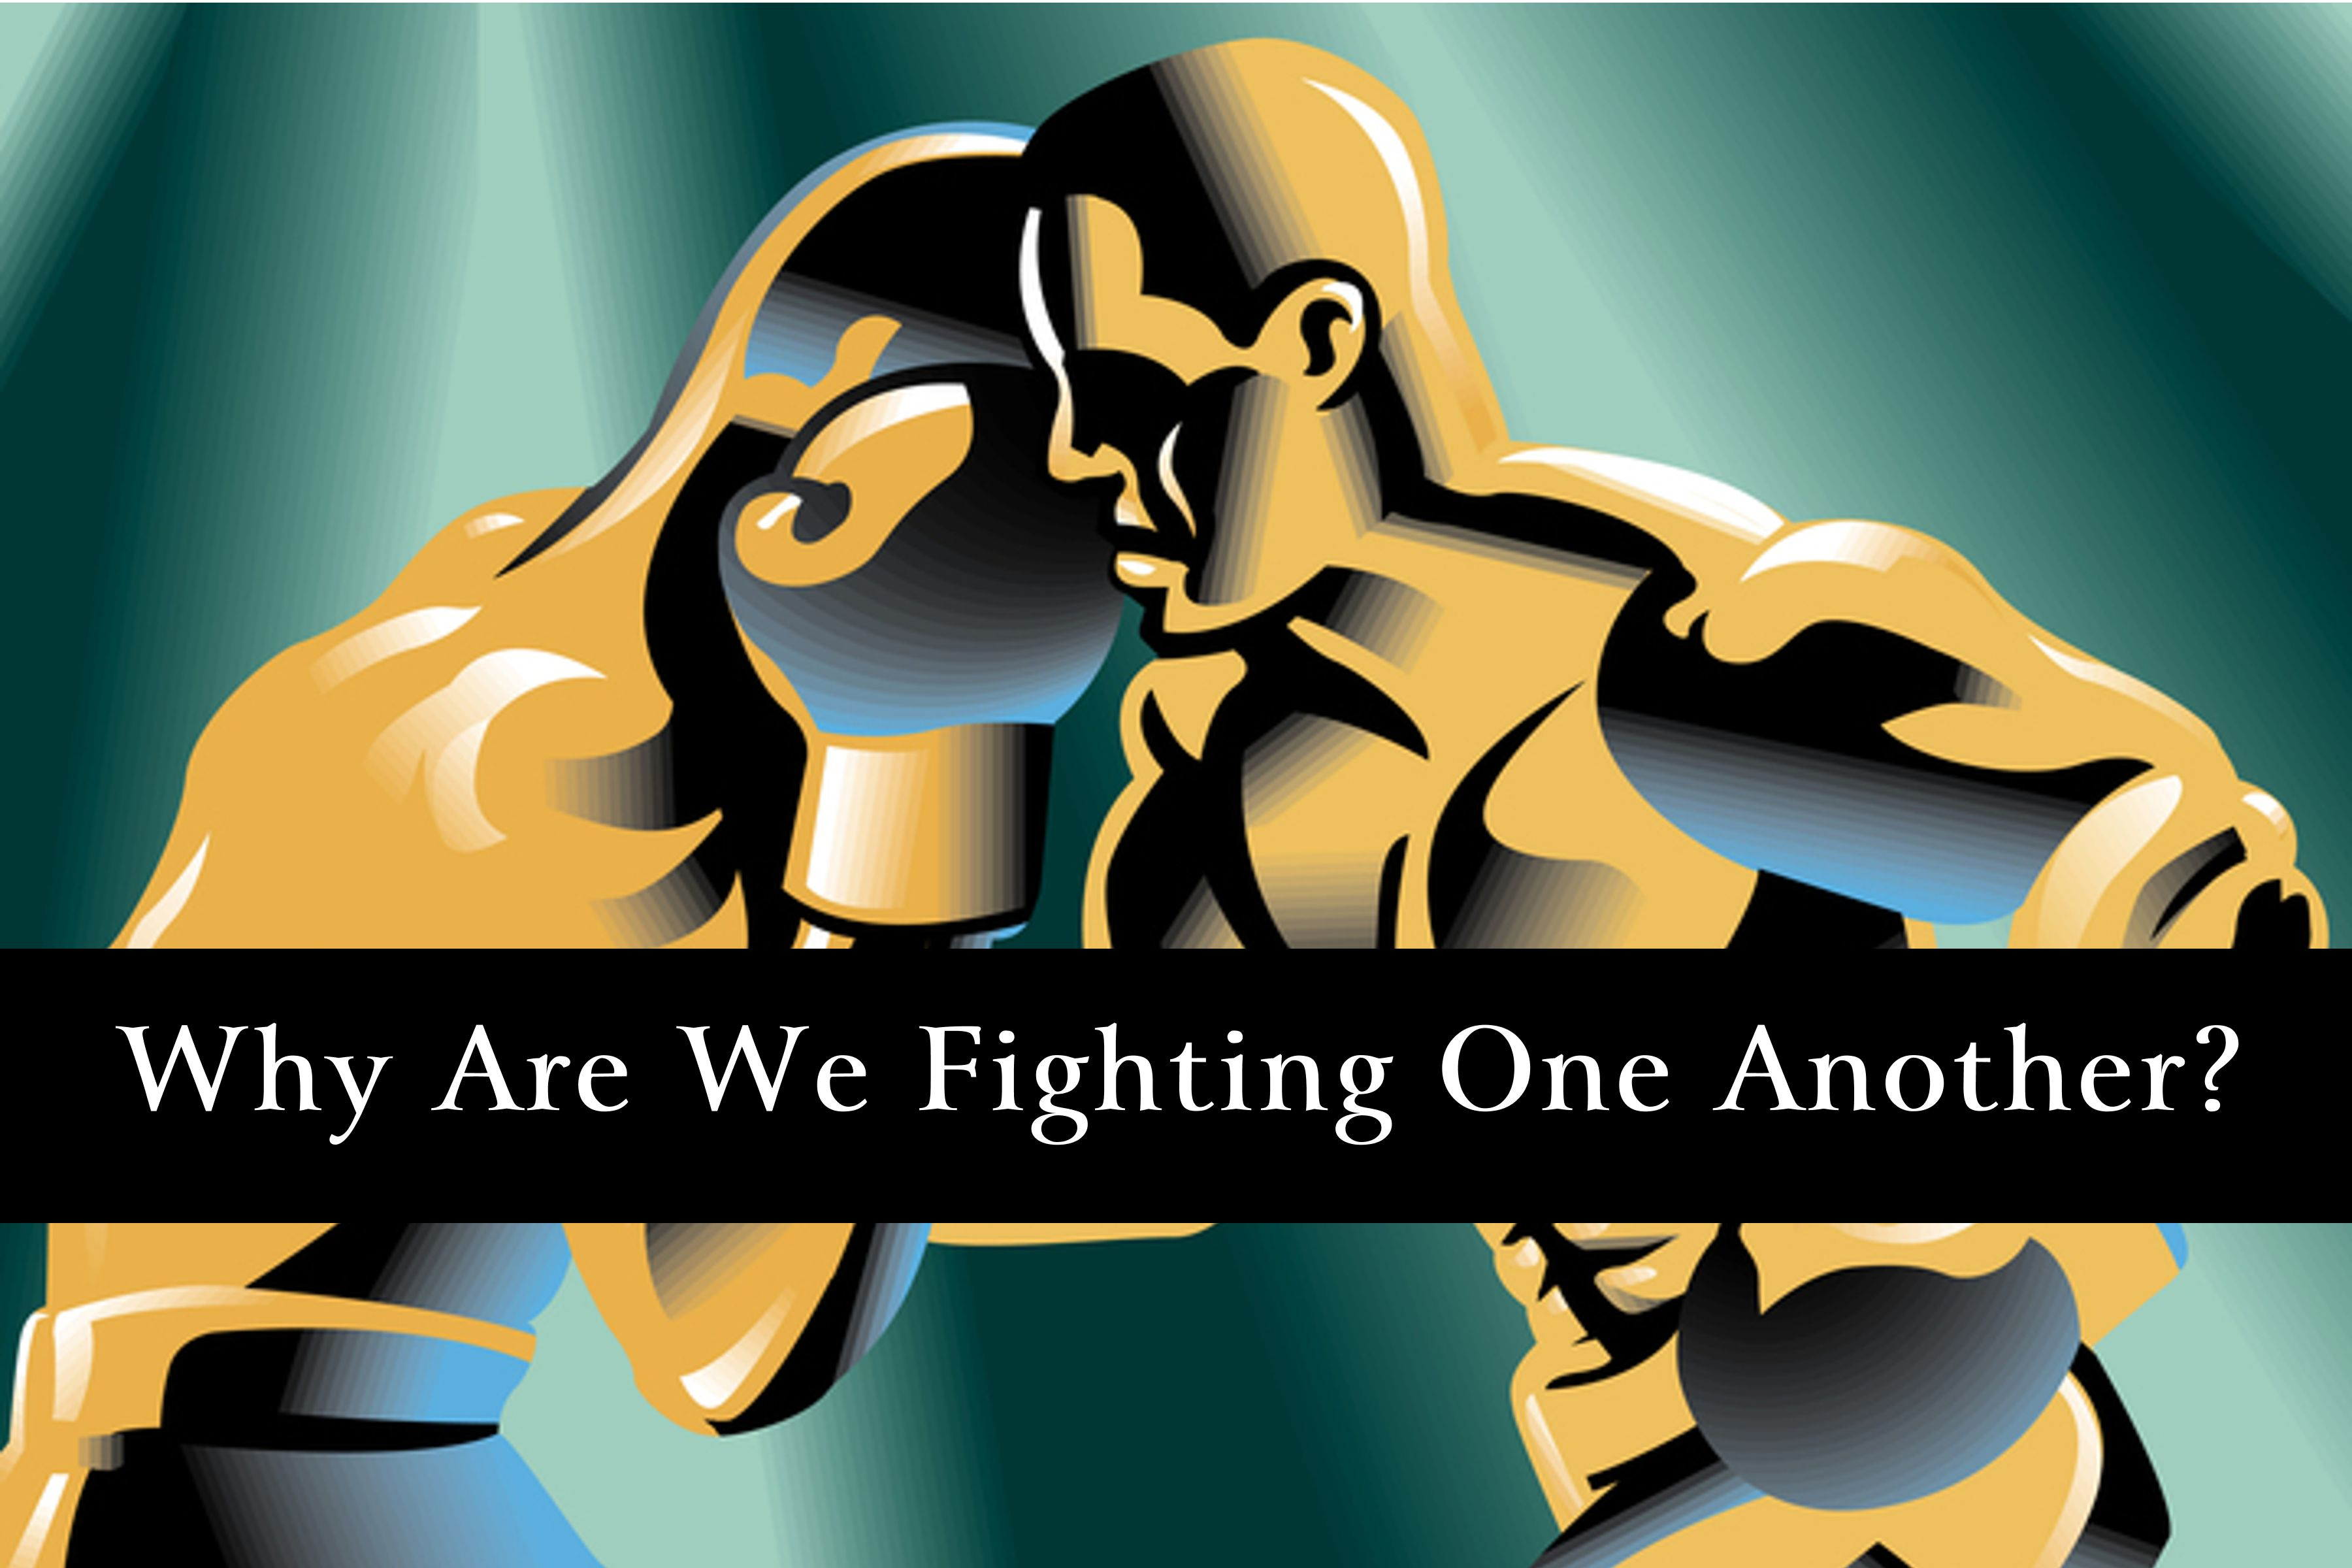 Why Are We Fighting One Another Word For Life Says